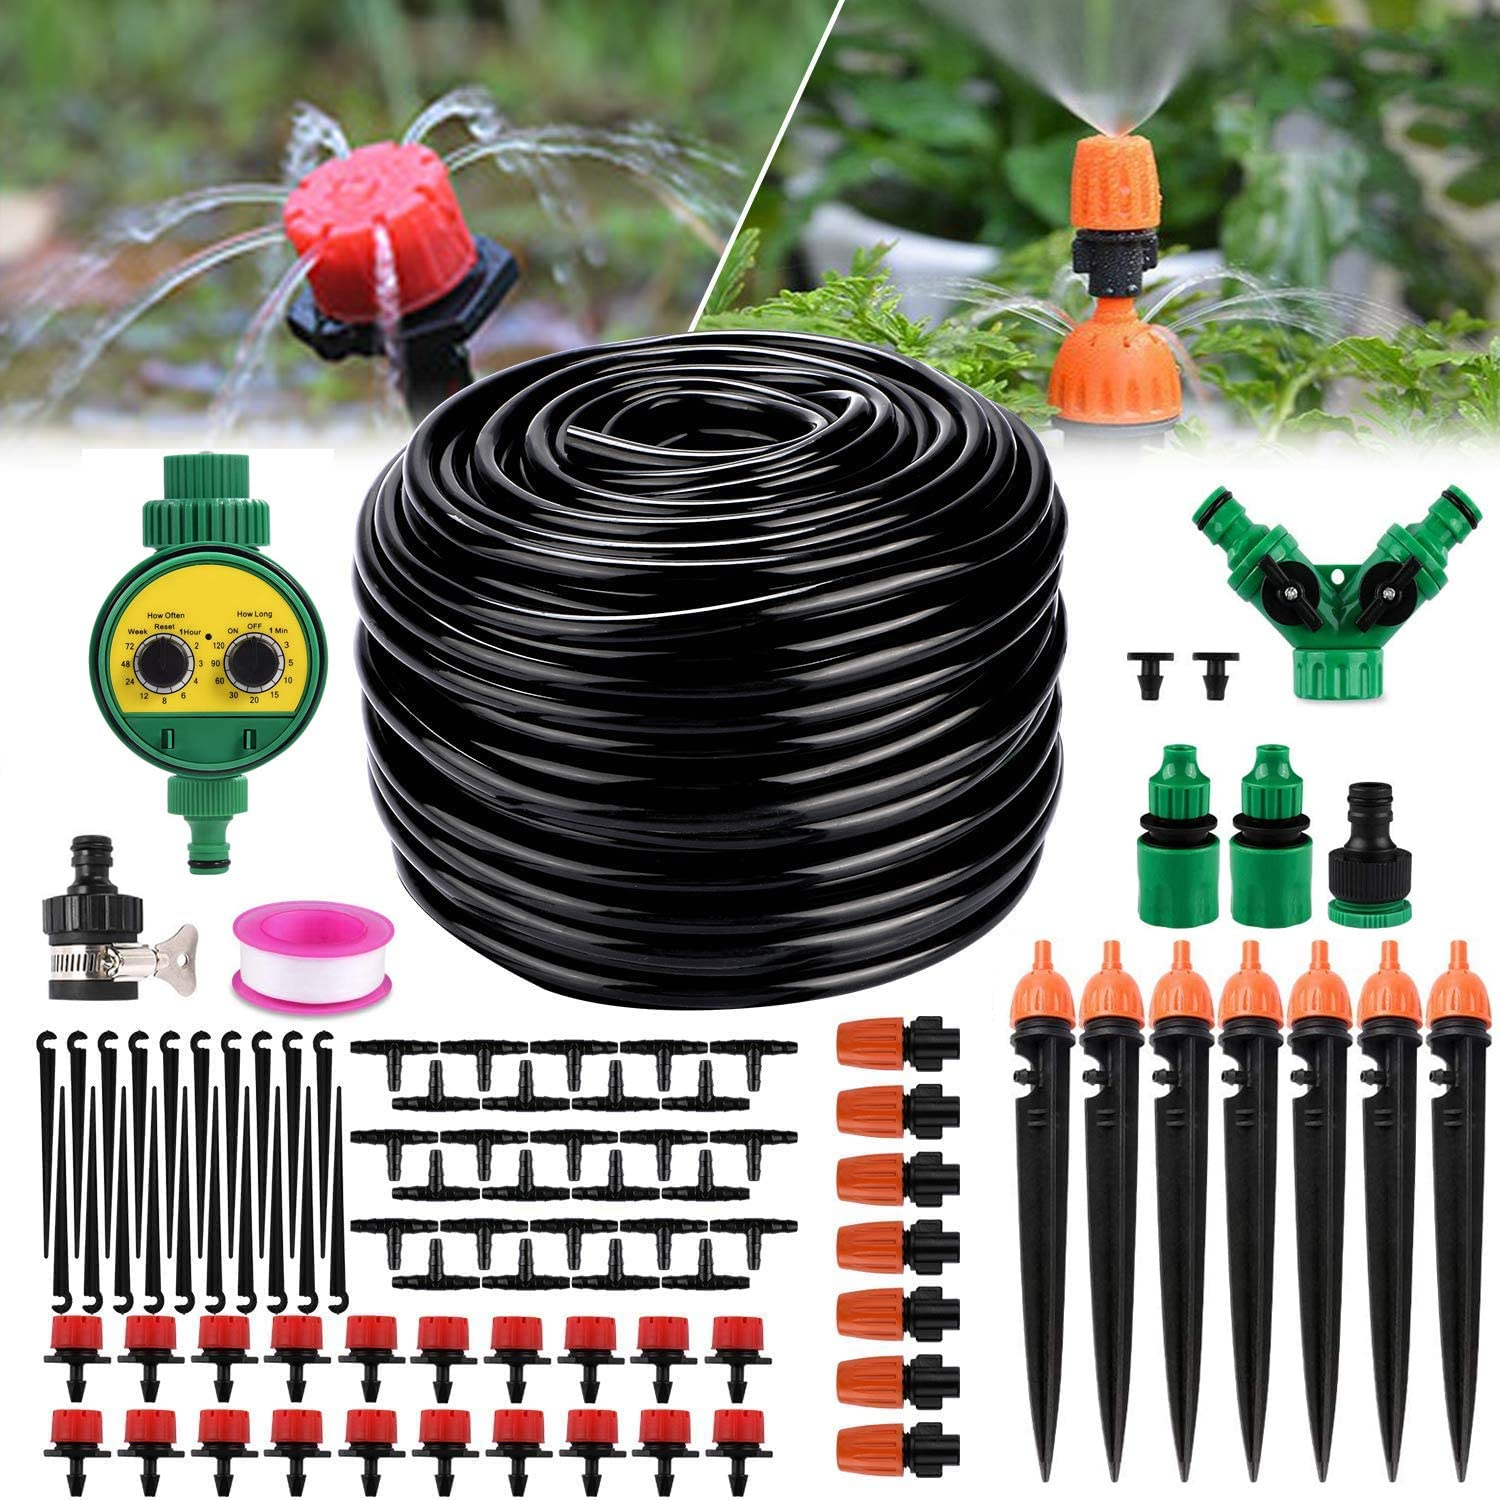 Drip Irrigation Kit, 82ft Automatic Micro Garden Irrigation System with Water Timer 1/4 Inches Blank Distribution Tubing Hose Adjustable Sprinkler Watering Drip Set